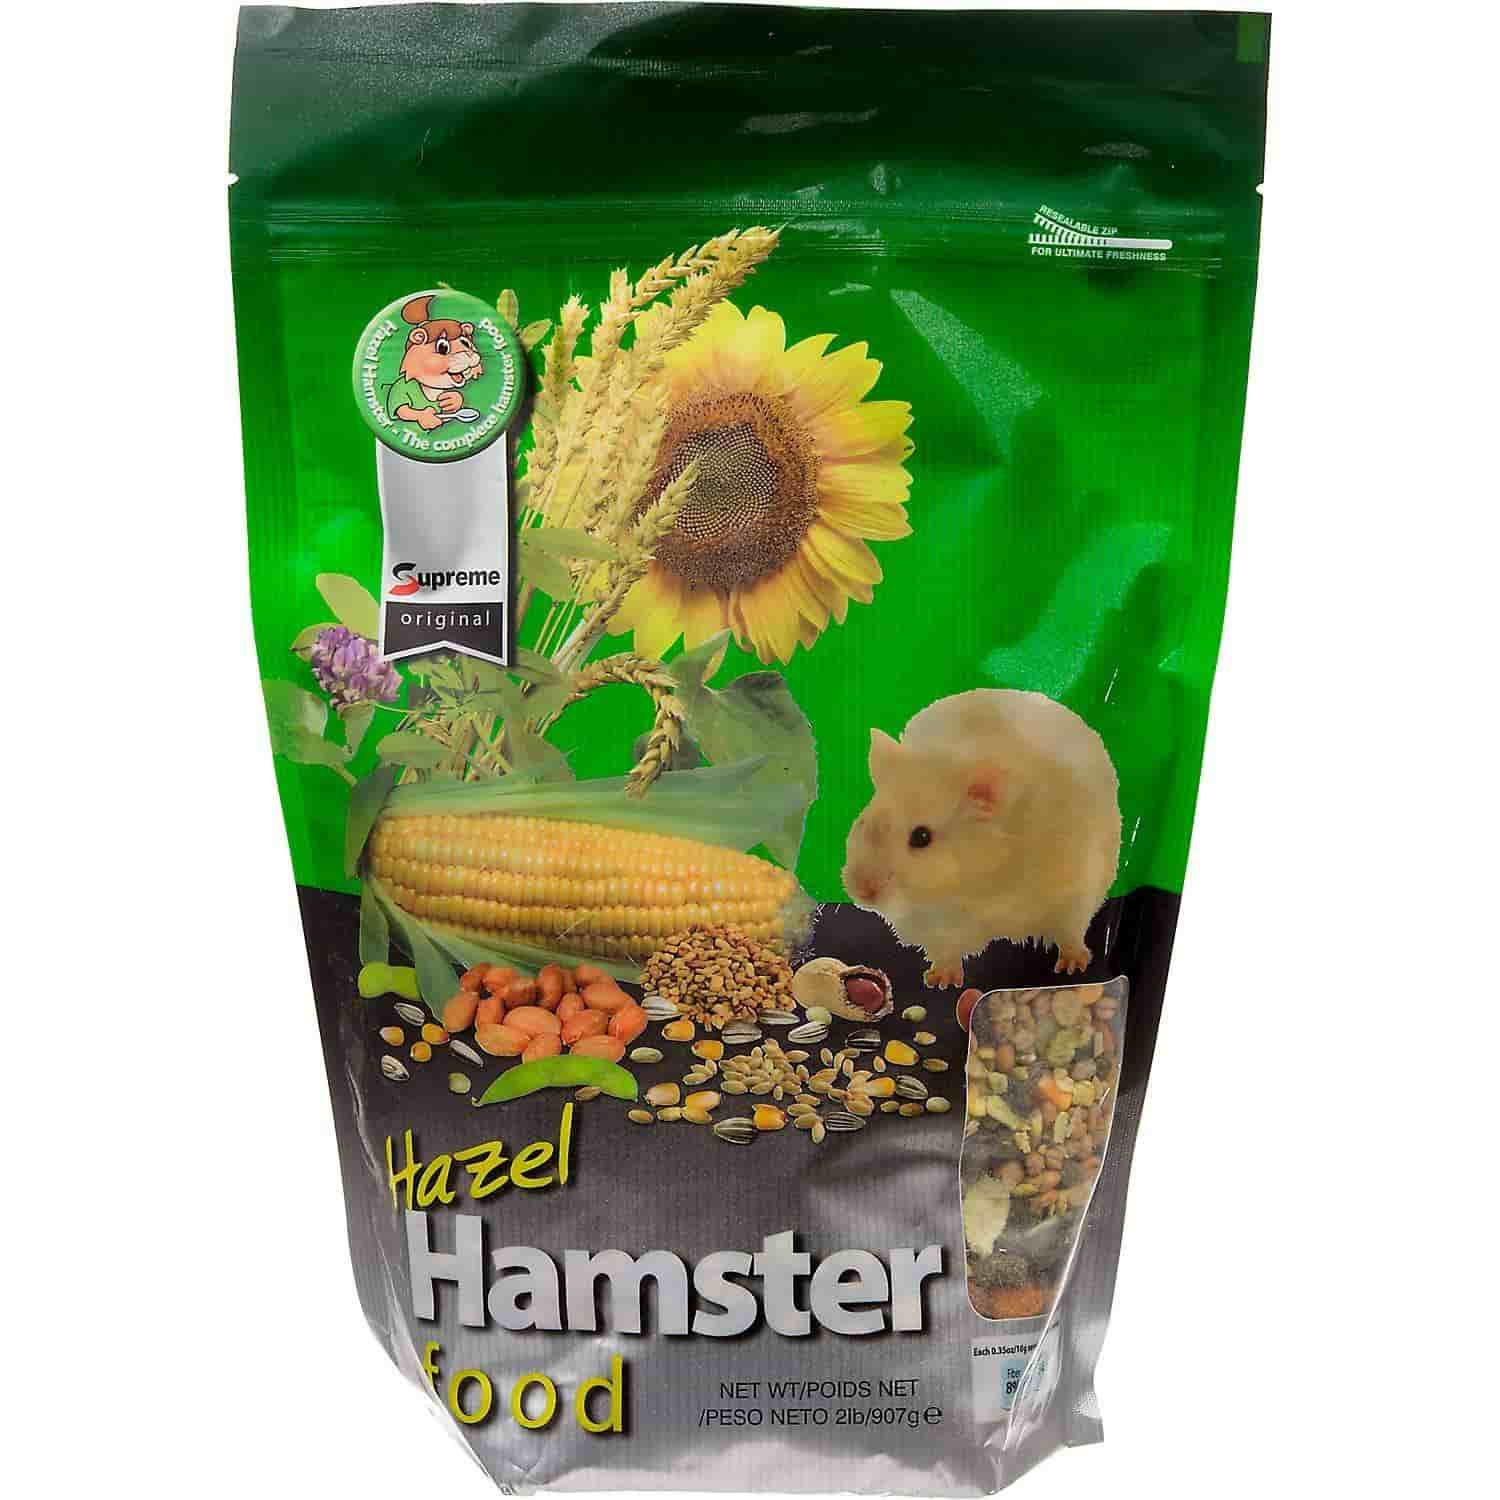 hamster food by hazel